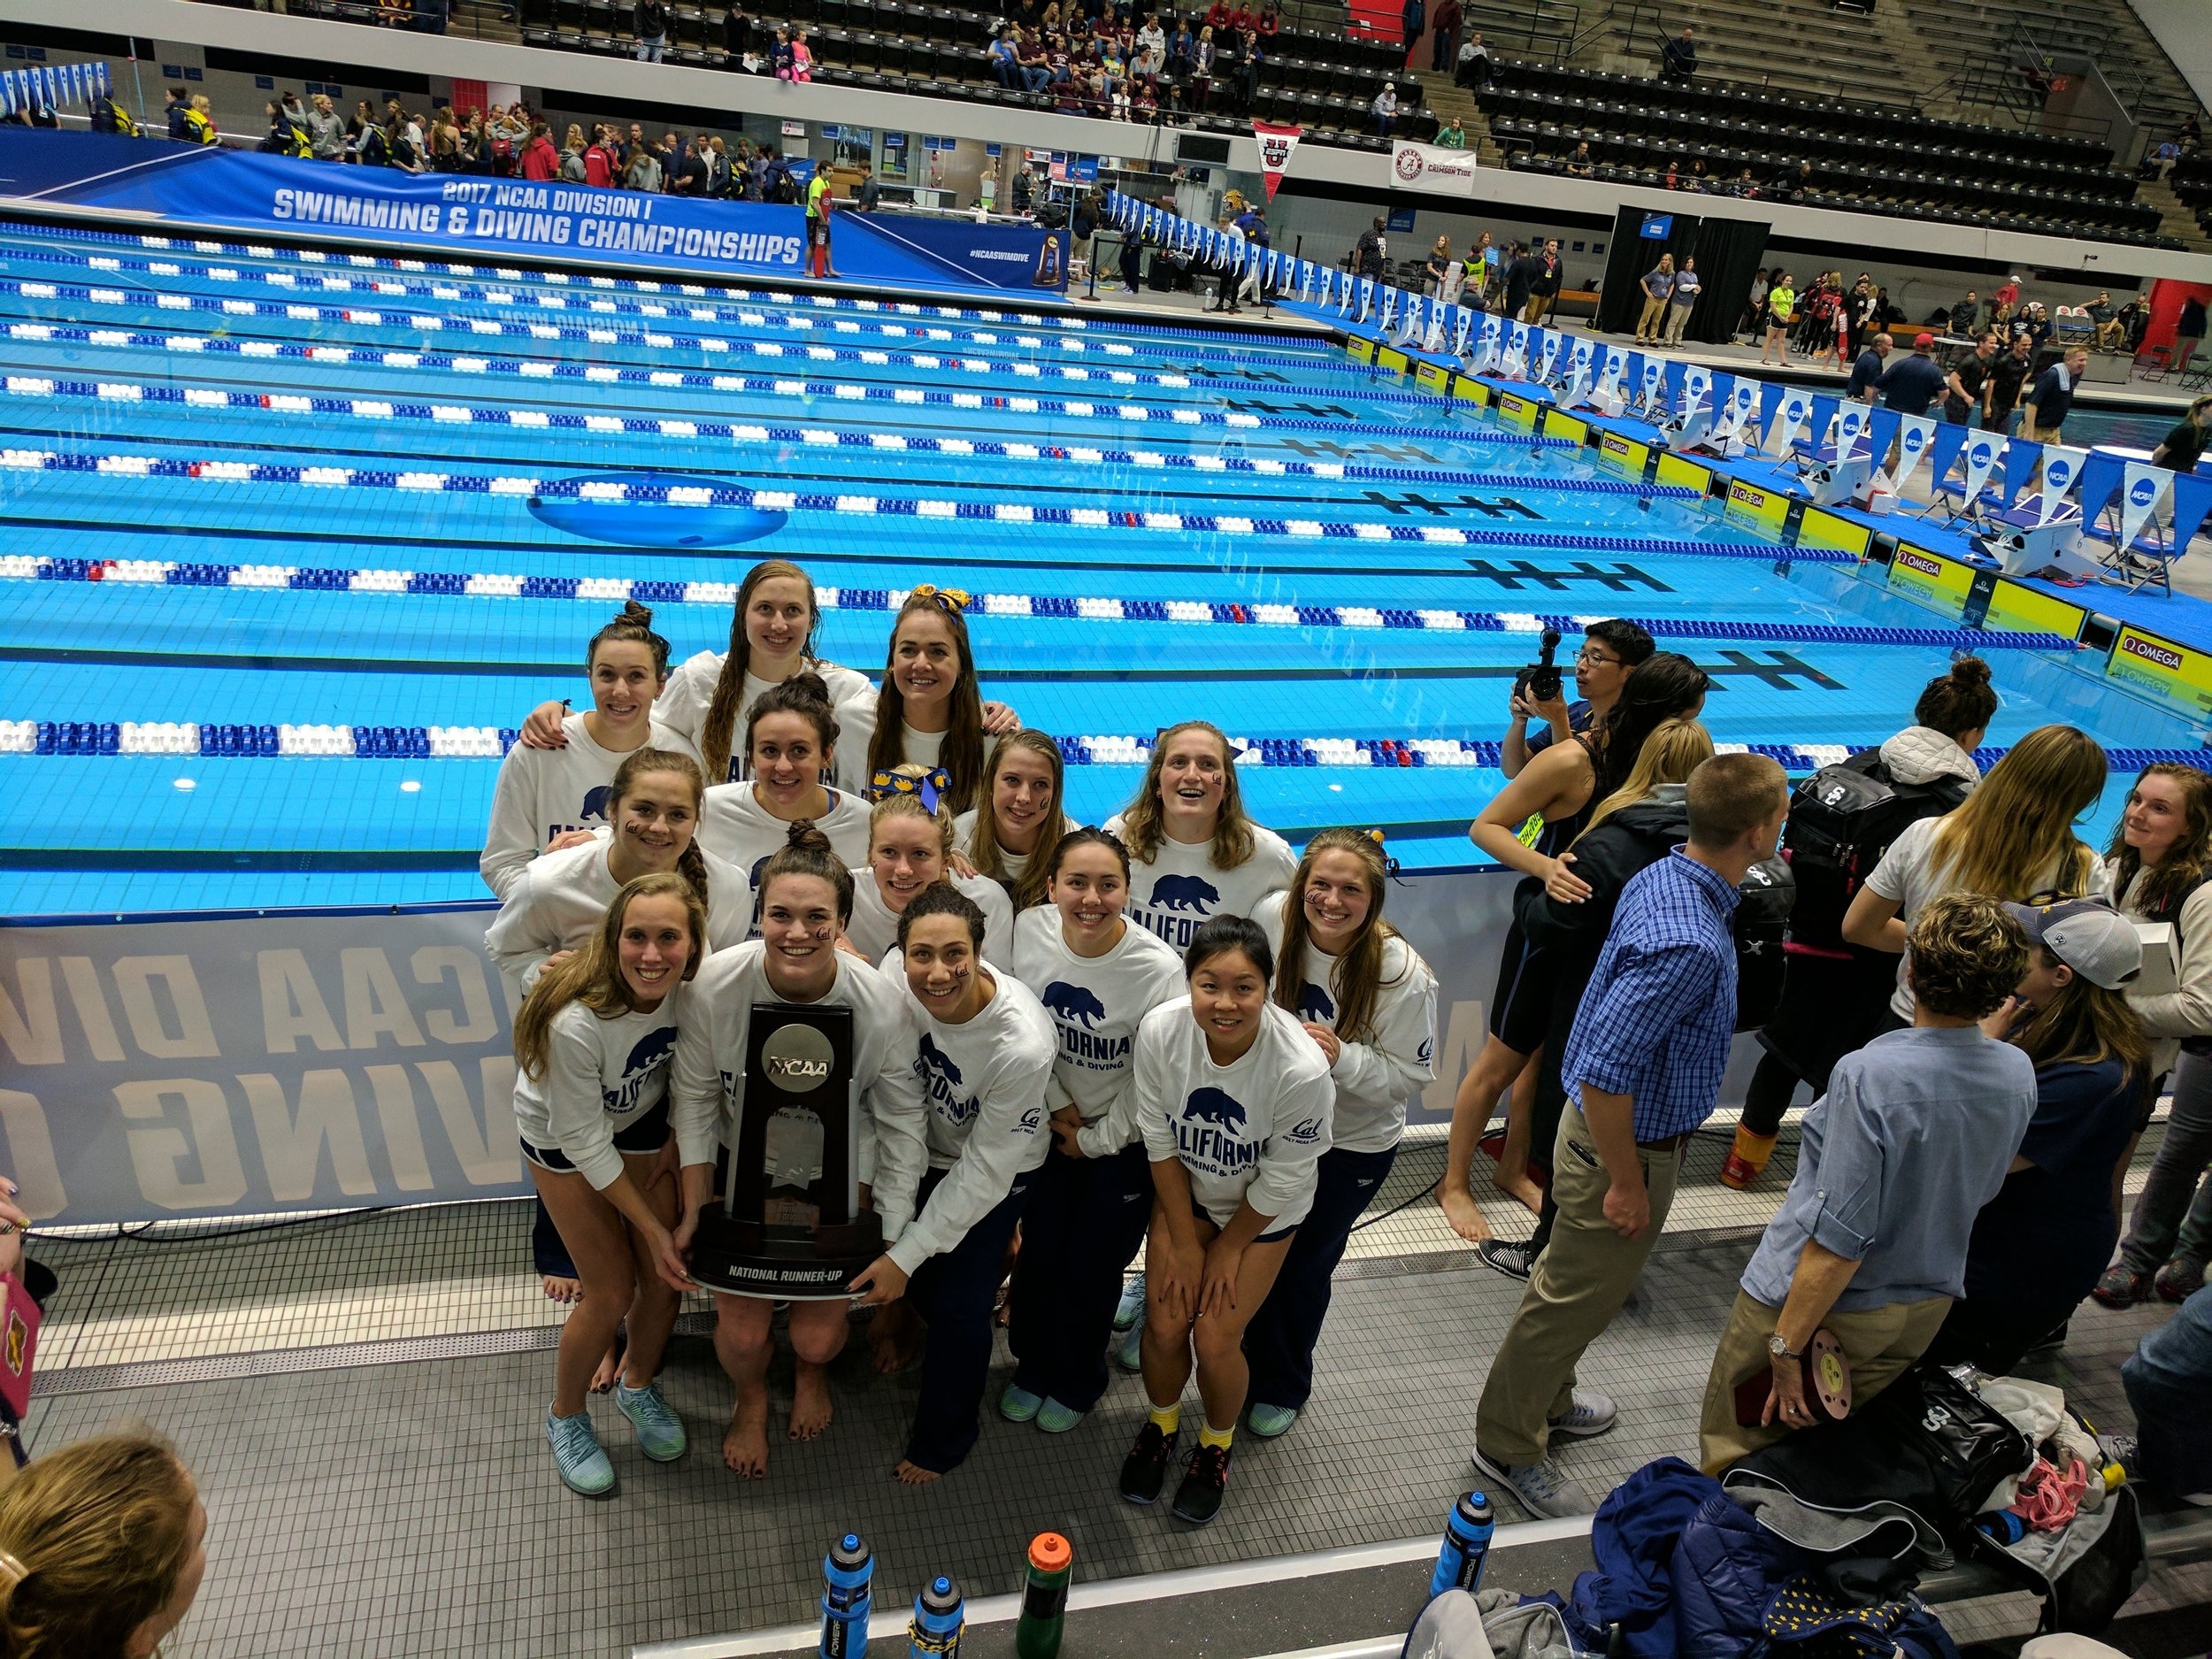 Women's Swimming NCAA Championships 2017